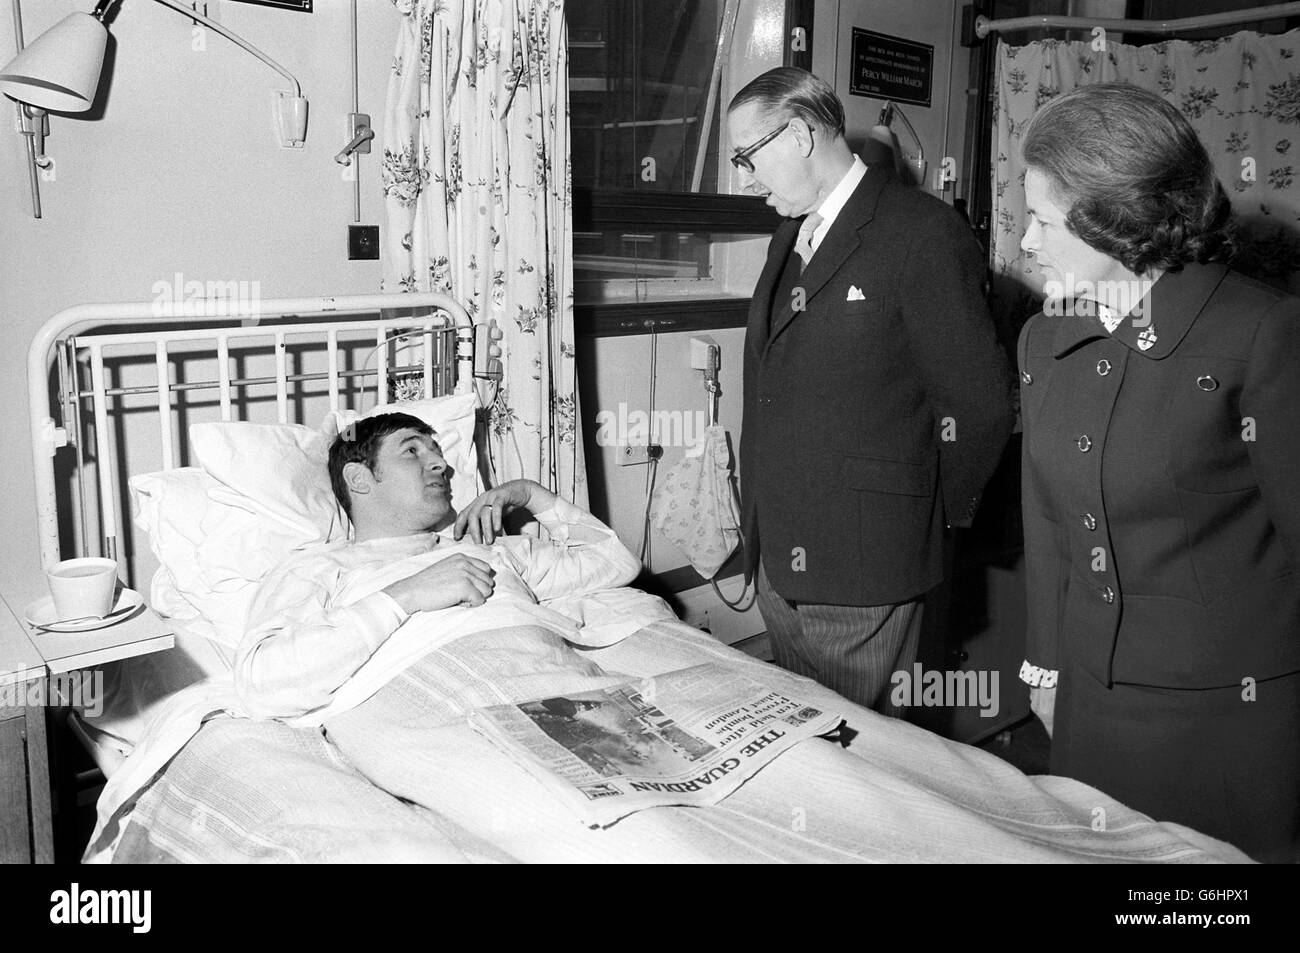 News - Old Bailey Bomb - Lord Mayor of London - St Bartolomew's Hospital - Stock Image